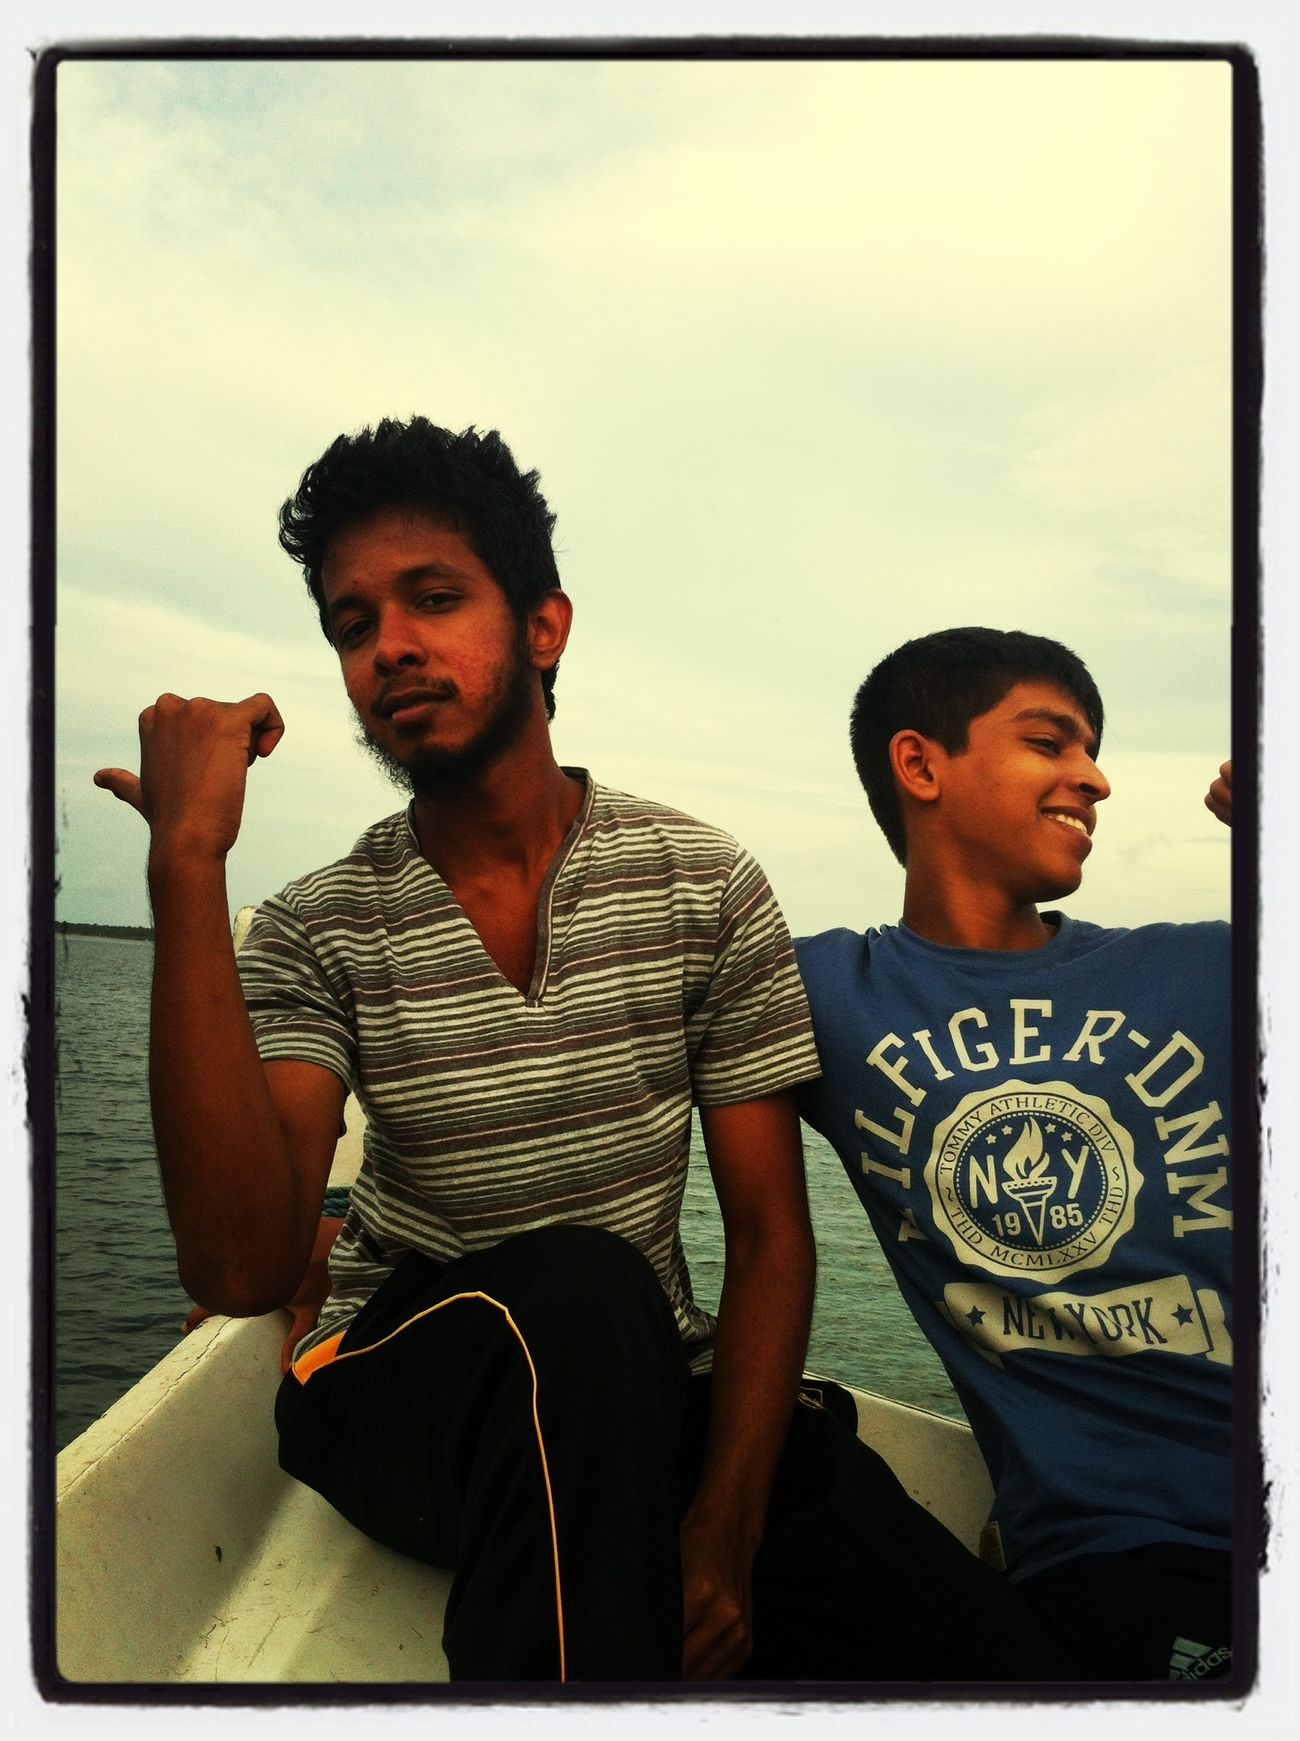 Me and Masina on the boat